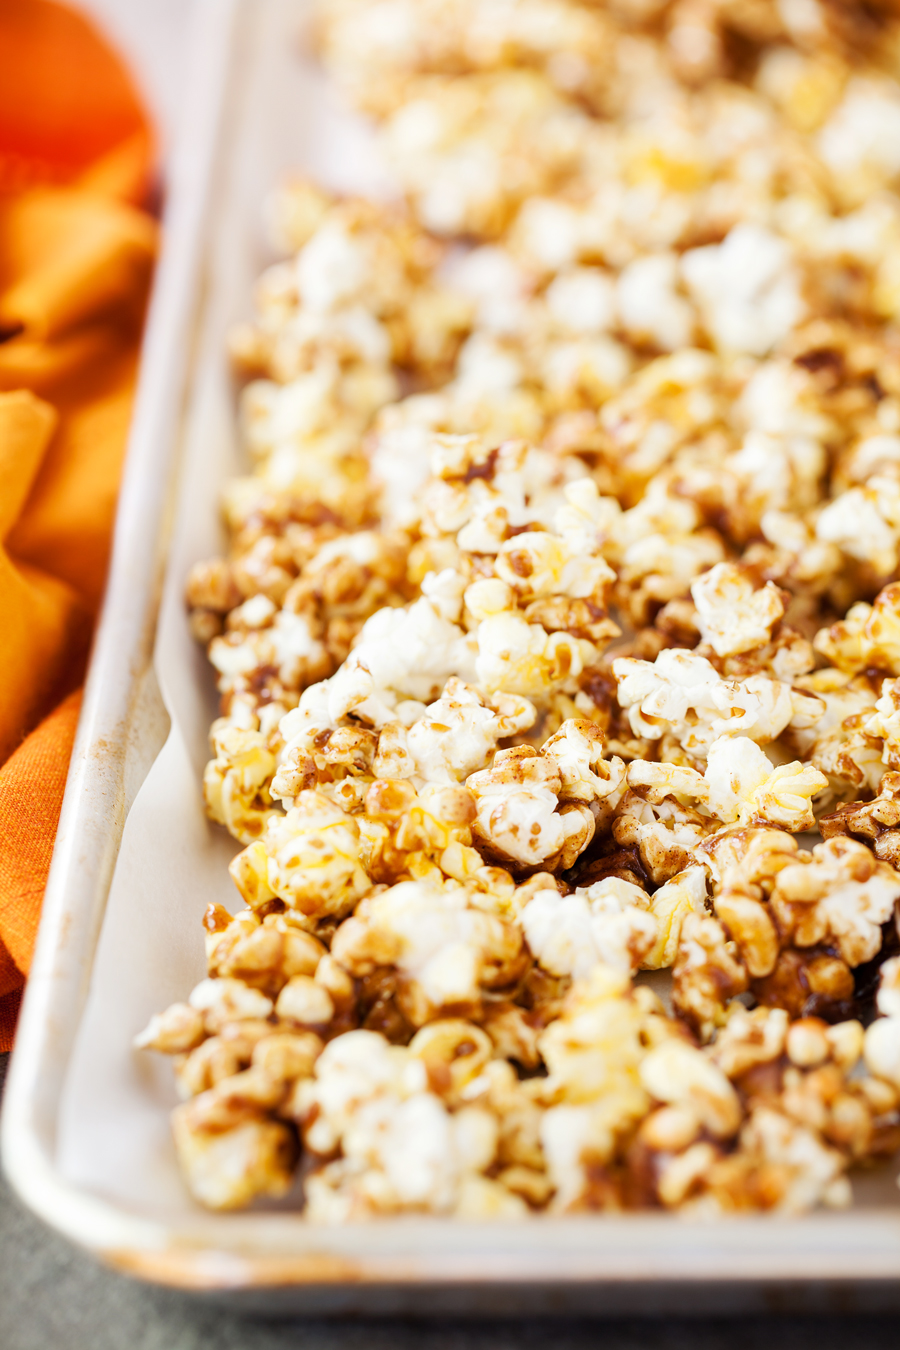 This Pumpkin Spice Caramel Popcorn is simple and bursting with fall flavors! It's the perfect amount for parties and to share with a friend!